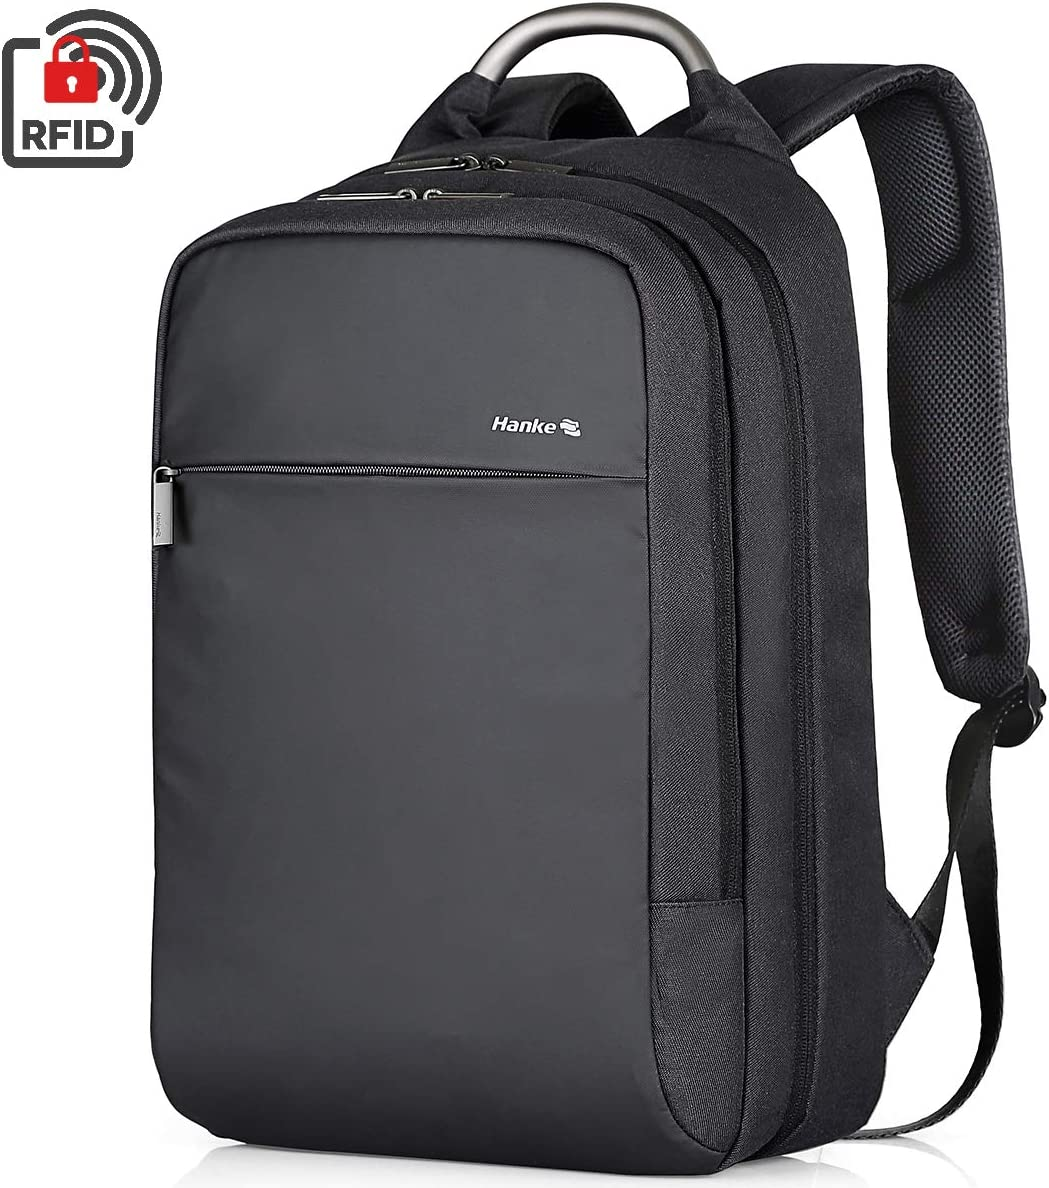 Hanke Carry on Backpack 18 Travel Casual Inch Seasonal Wrap Introduction Durable Max 43% OFF A